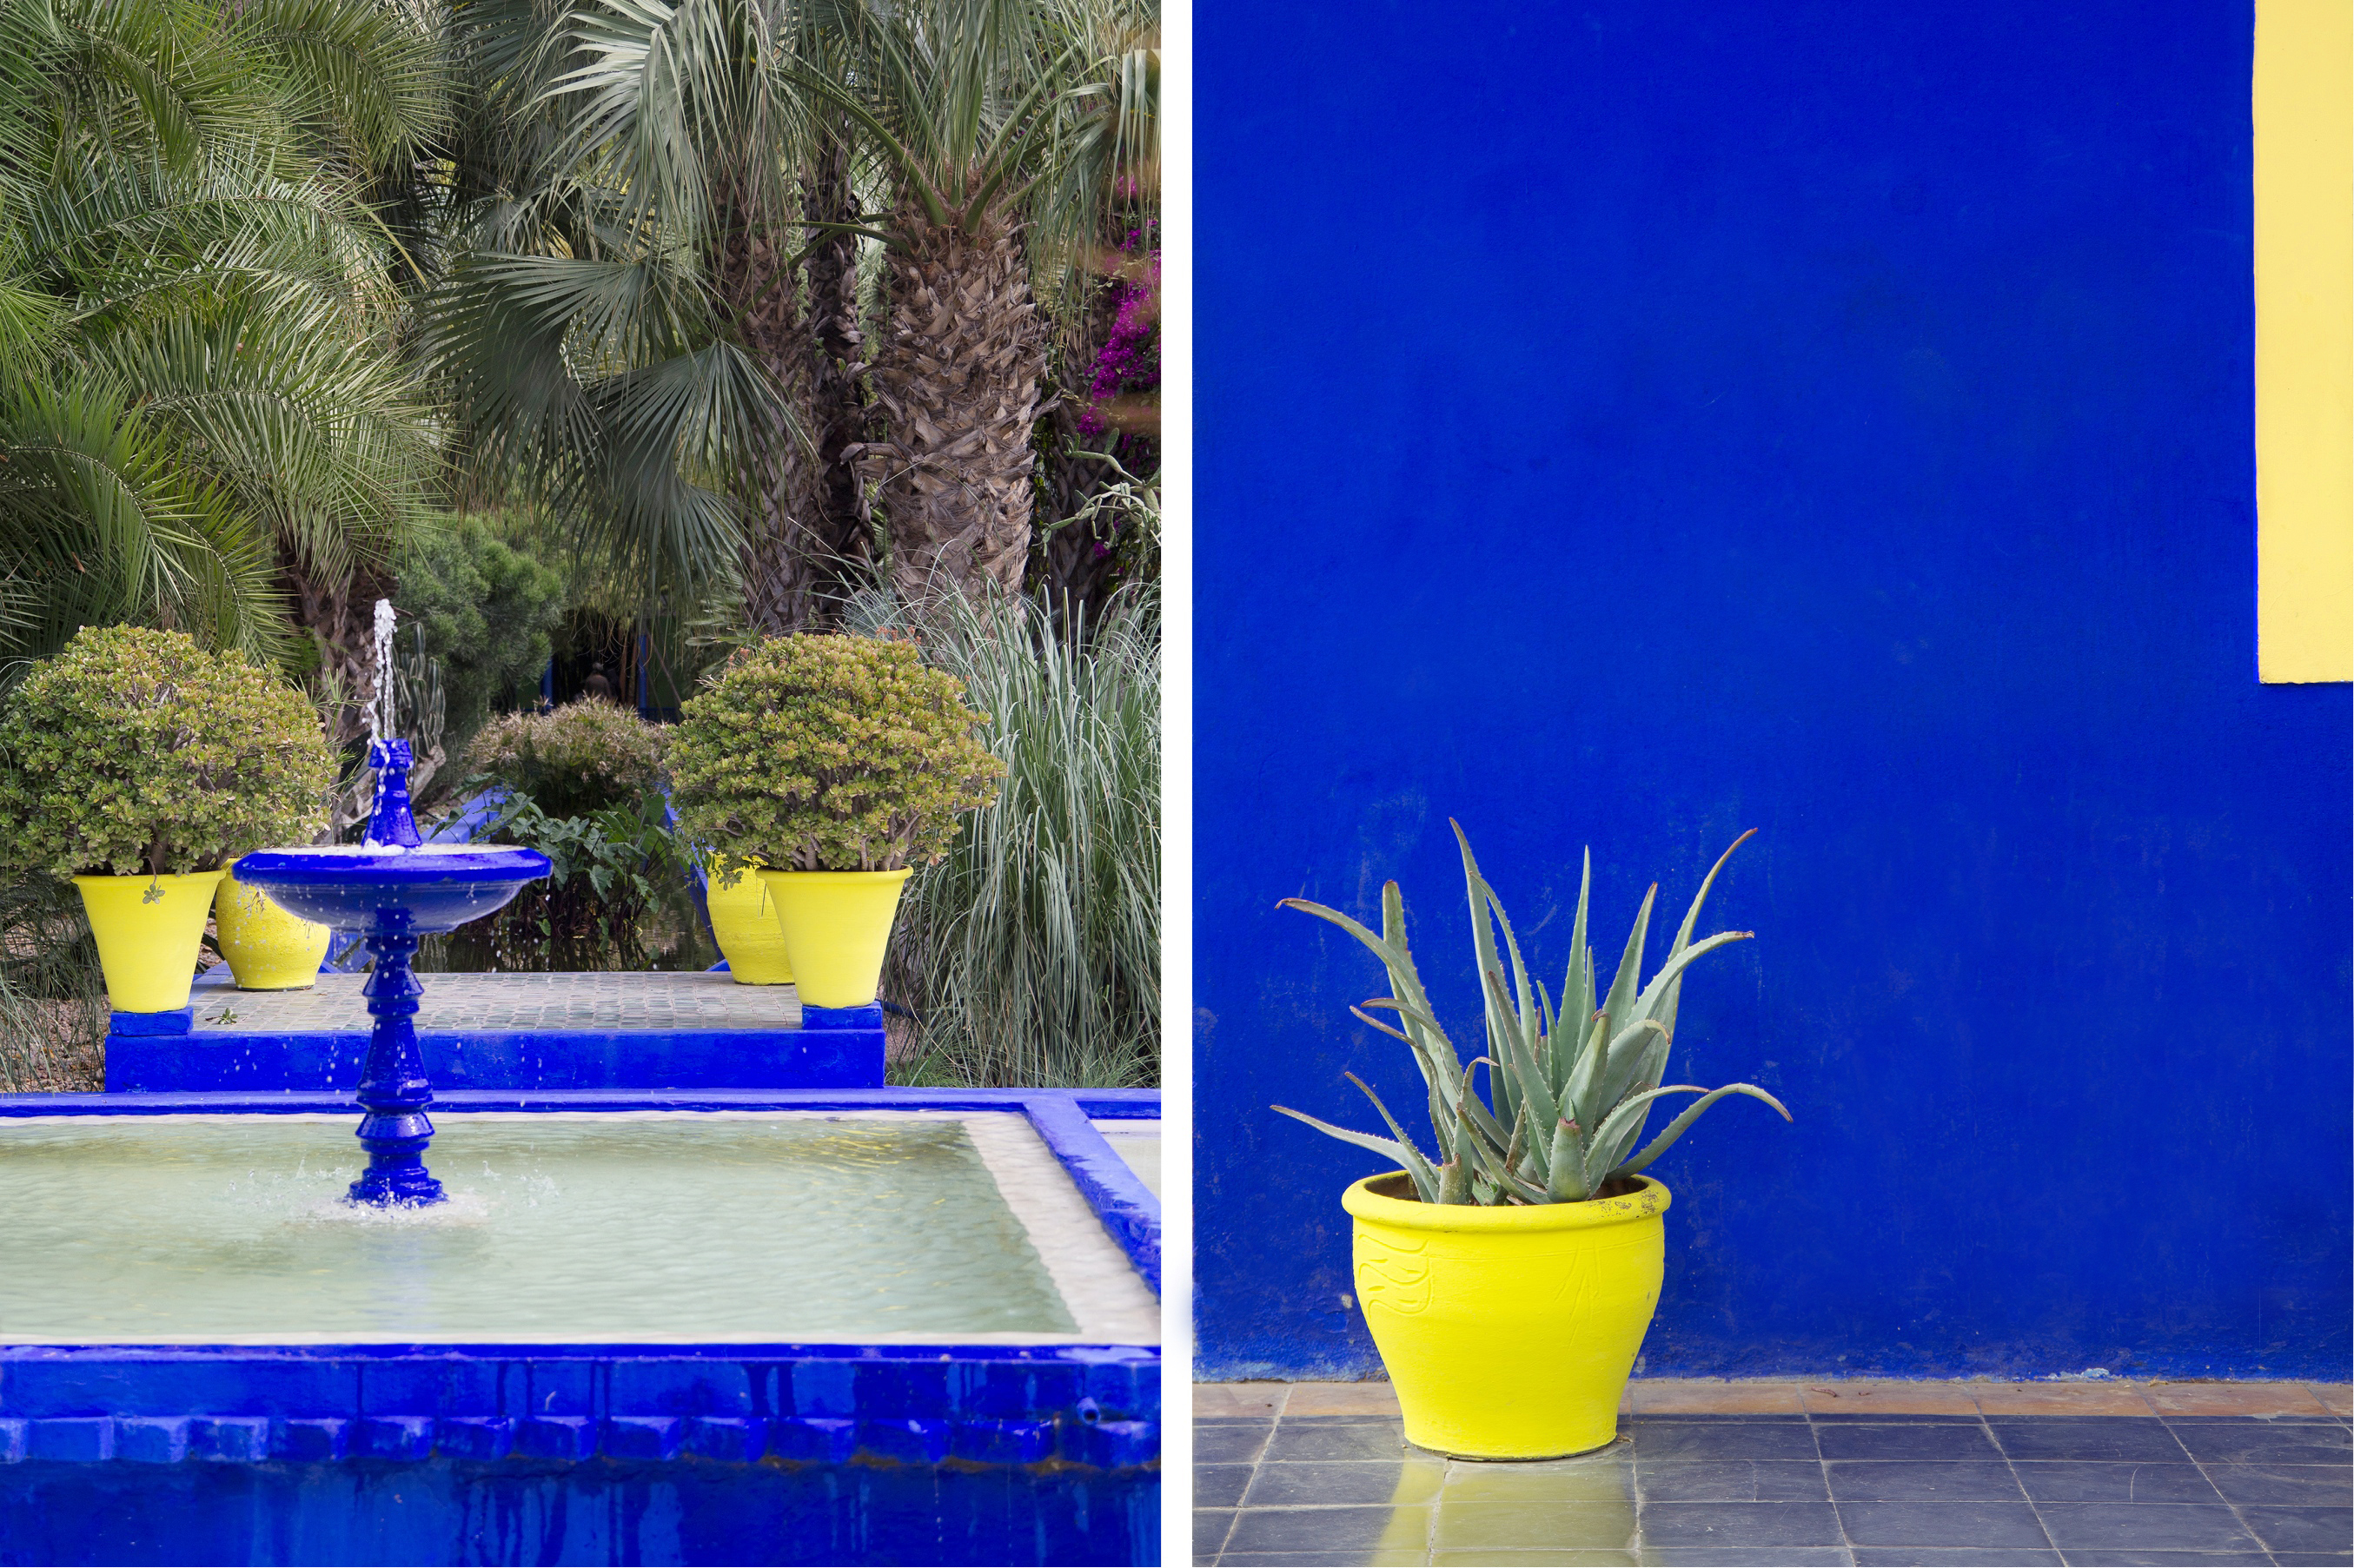 majorelle marrakech check out majorelle marrakech cntravel. Black Bedroom Furniture Sets. Home Design Ideas